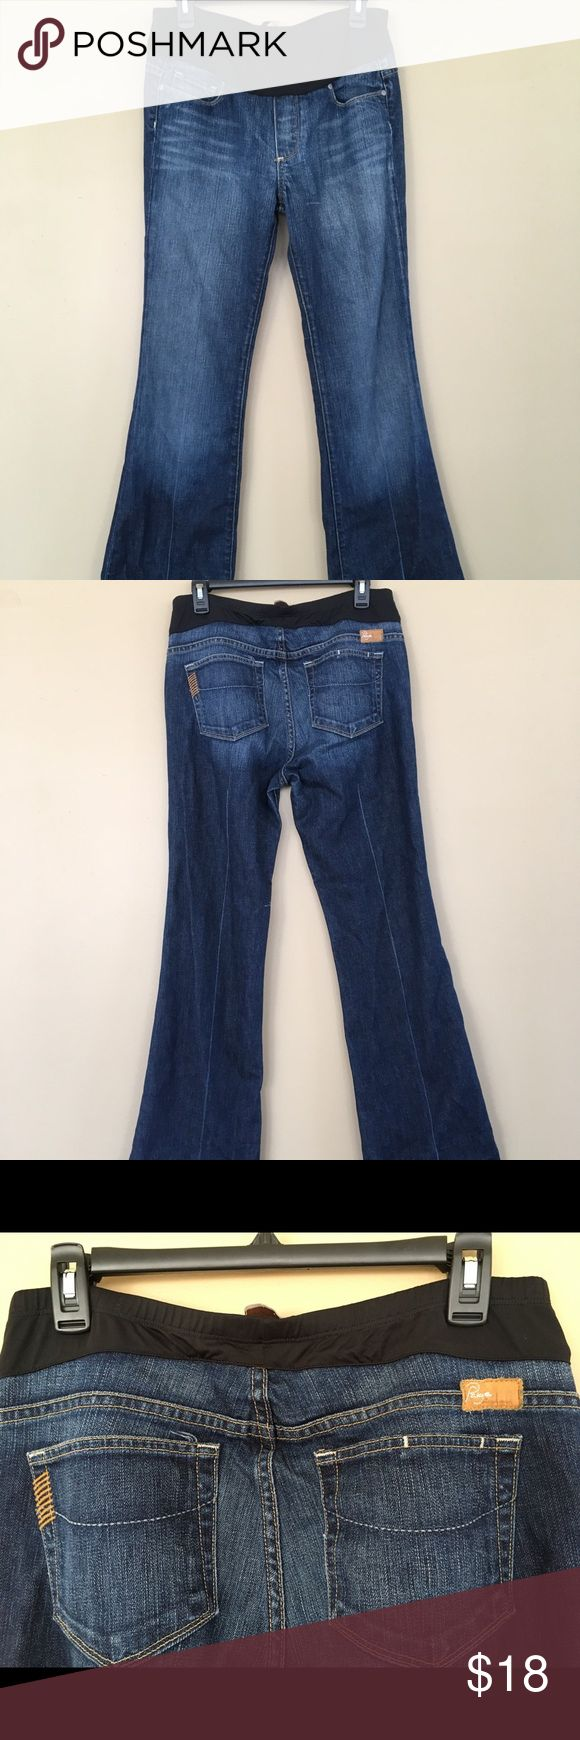 Paige Premium Denim Maternity Boot Cut Size 31 Buyer gets these Awesome Pre-Owned Women's Paige Maternity premium Denim Blue Jeans Dark Wash Boot Cut. Belly panel  SIZE 31 SEE PICS For Measurements   Fantastic Condition No Holes Tears or Stains PAIGE Jeans Boot Cut